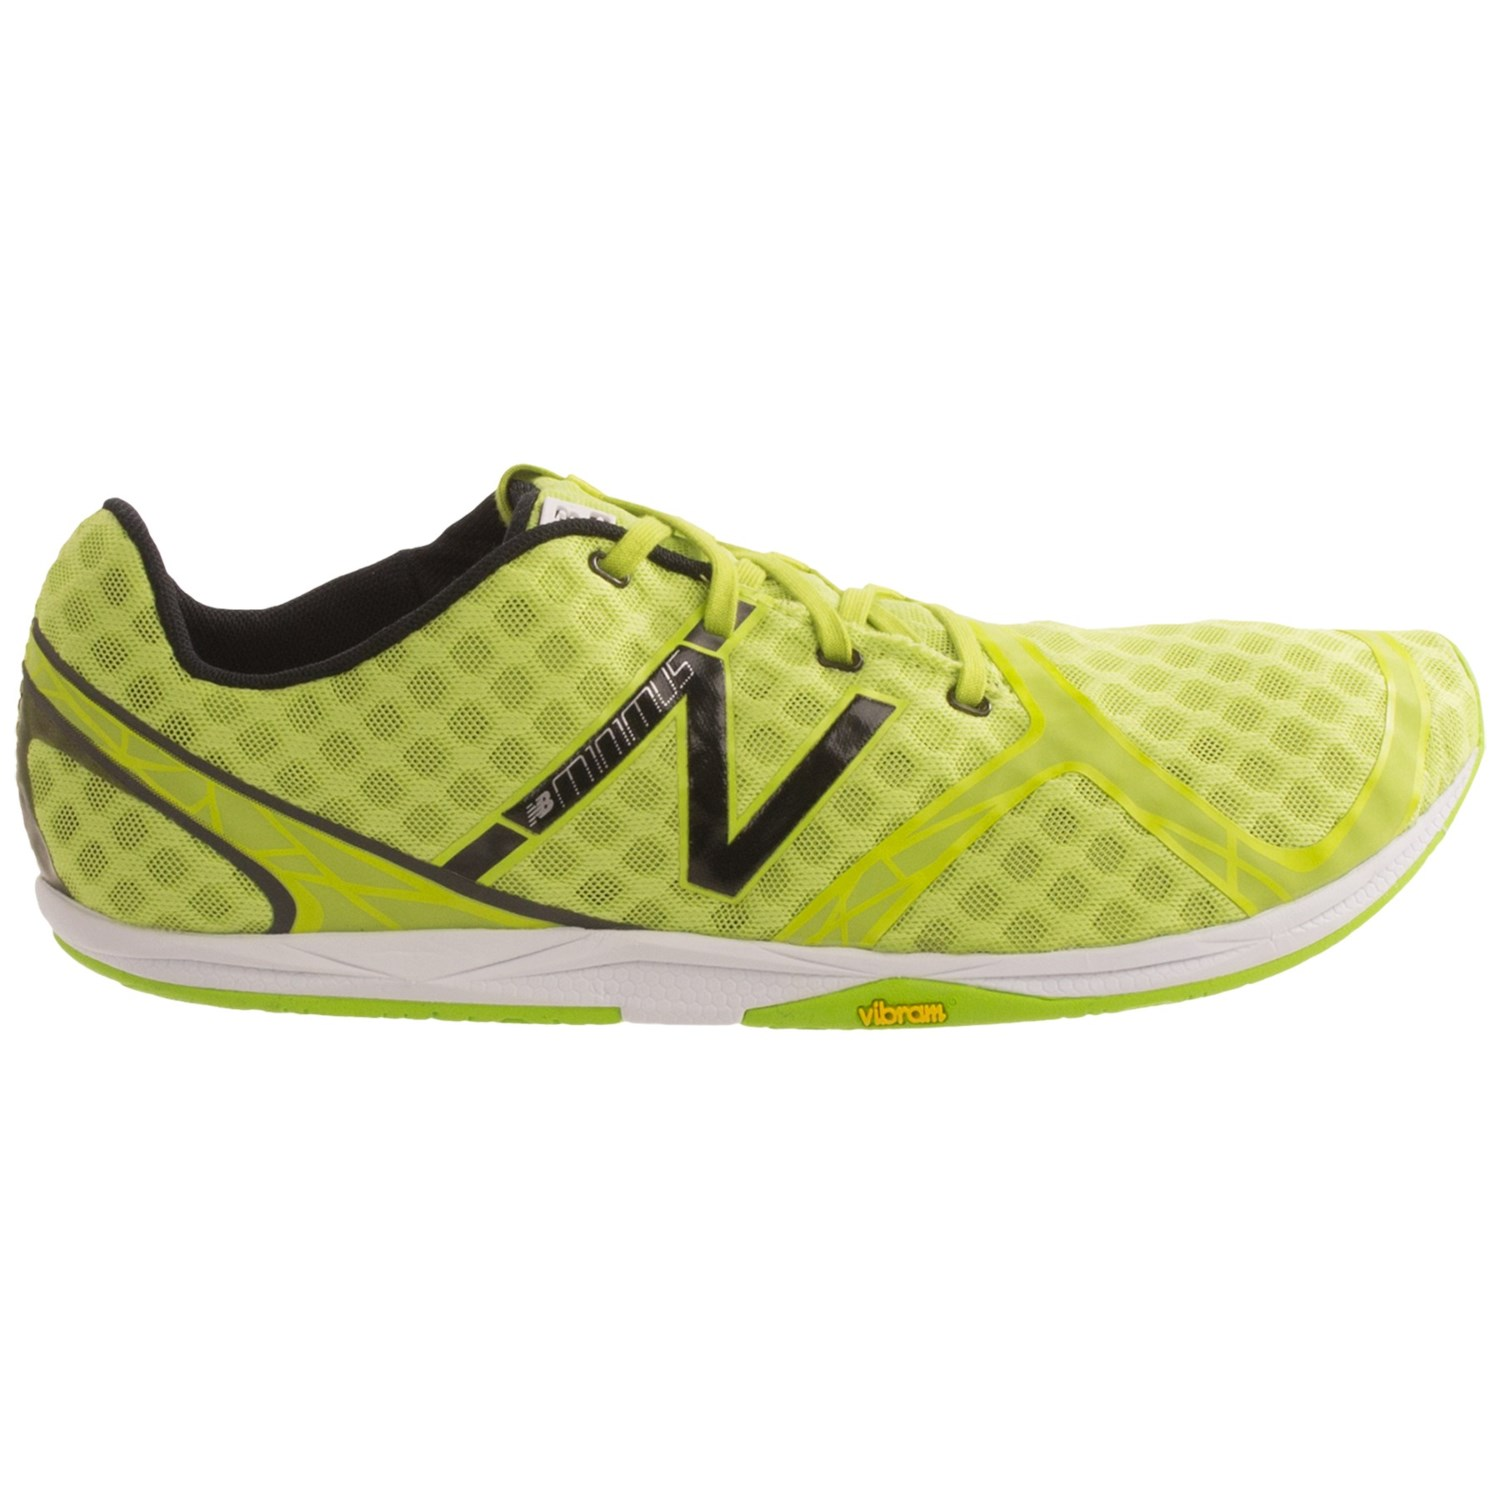 new balance minimalist running shoes | Philly Diet Doctor ...